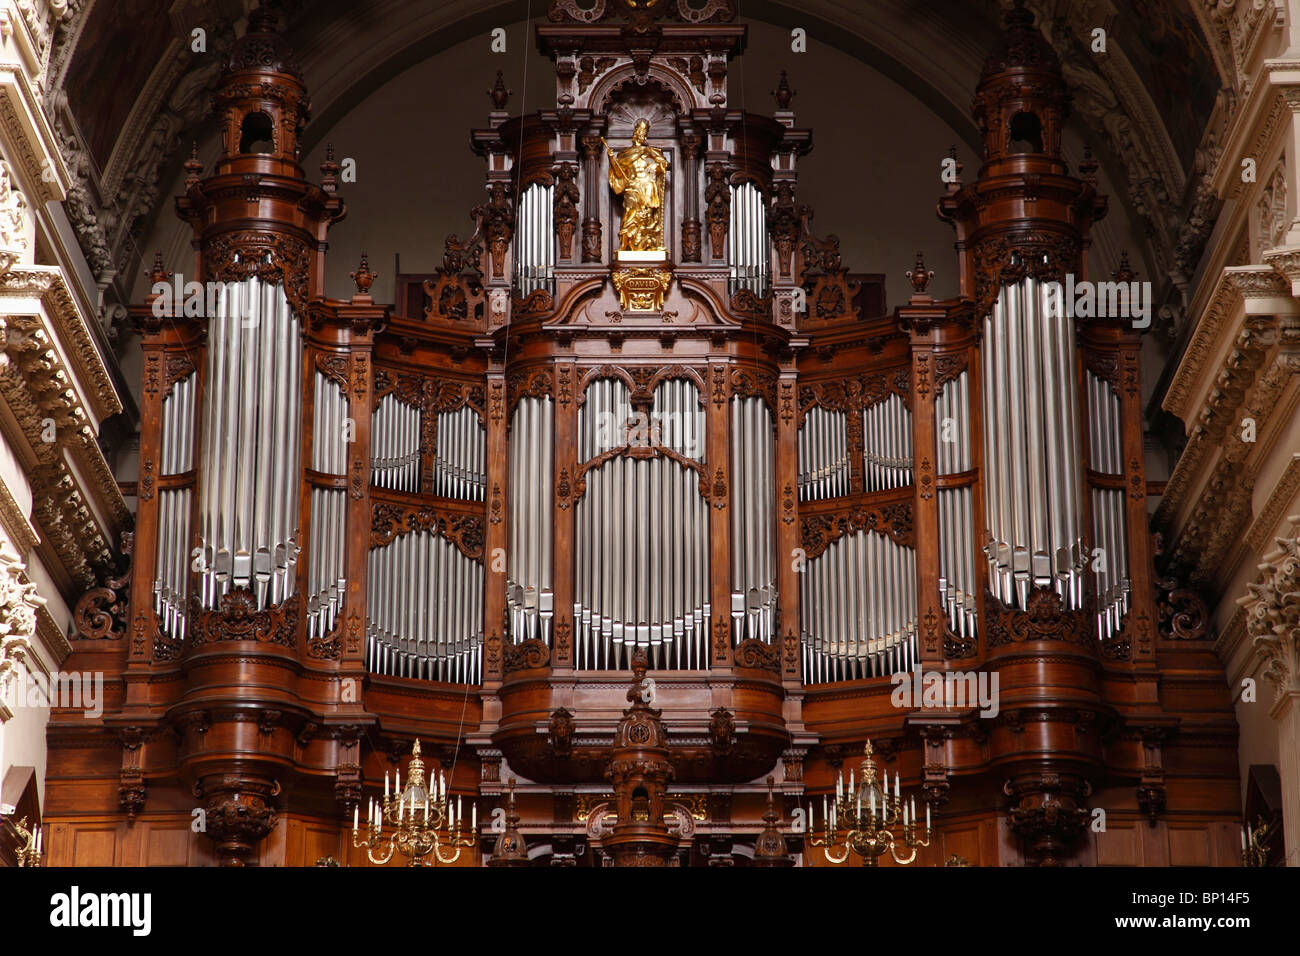 Germany, Berlin, Dom, Cathedral, interior, organ - Stock Image